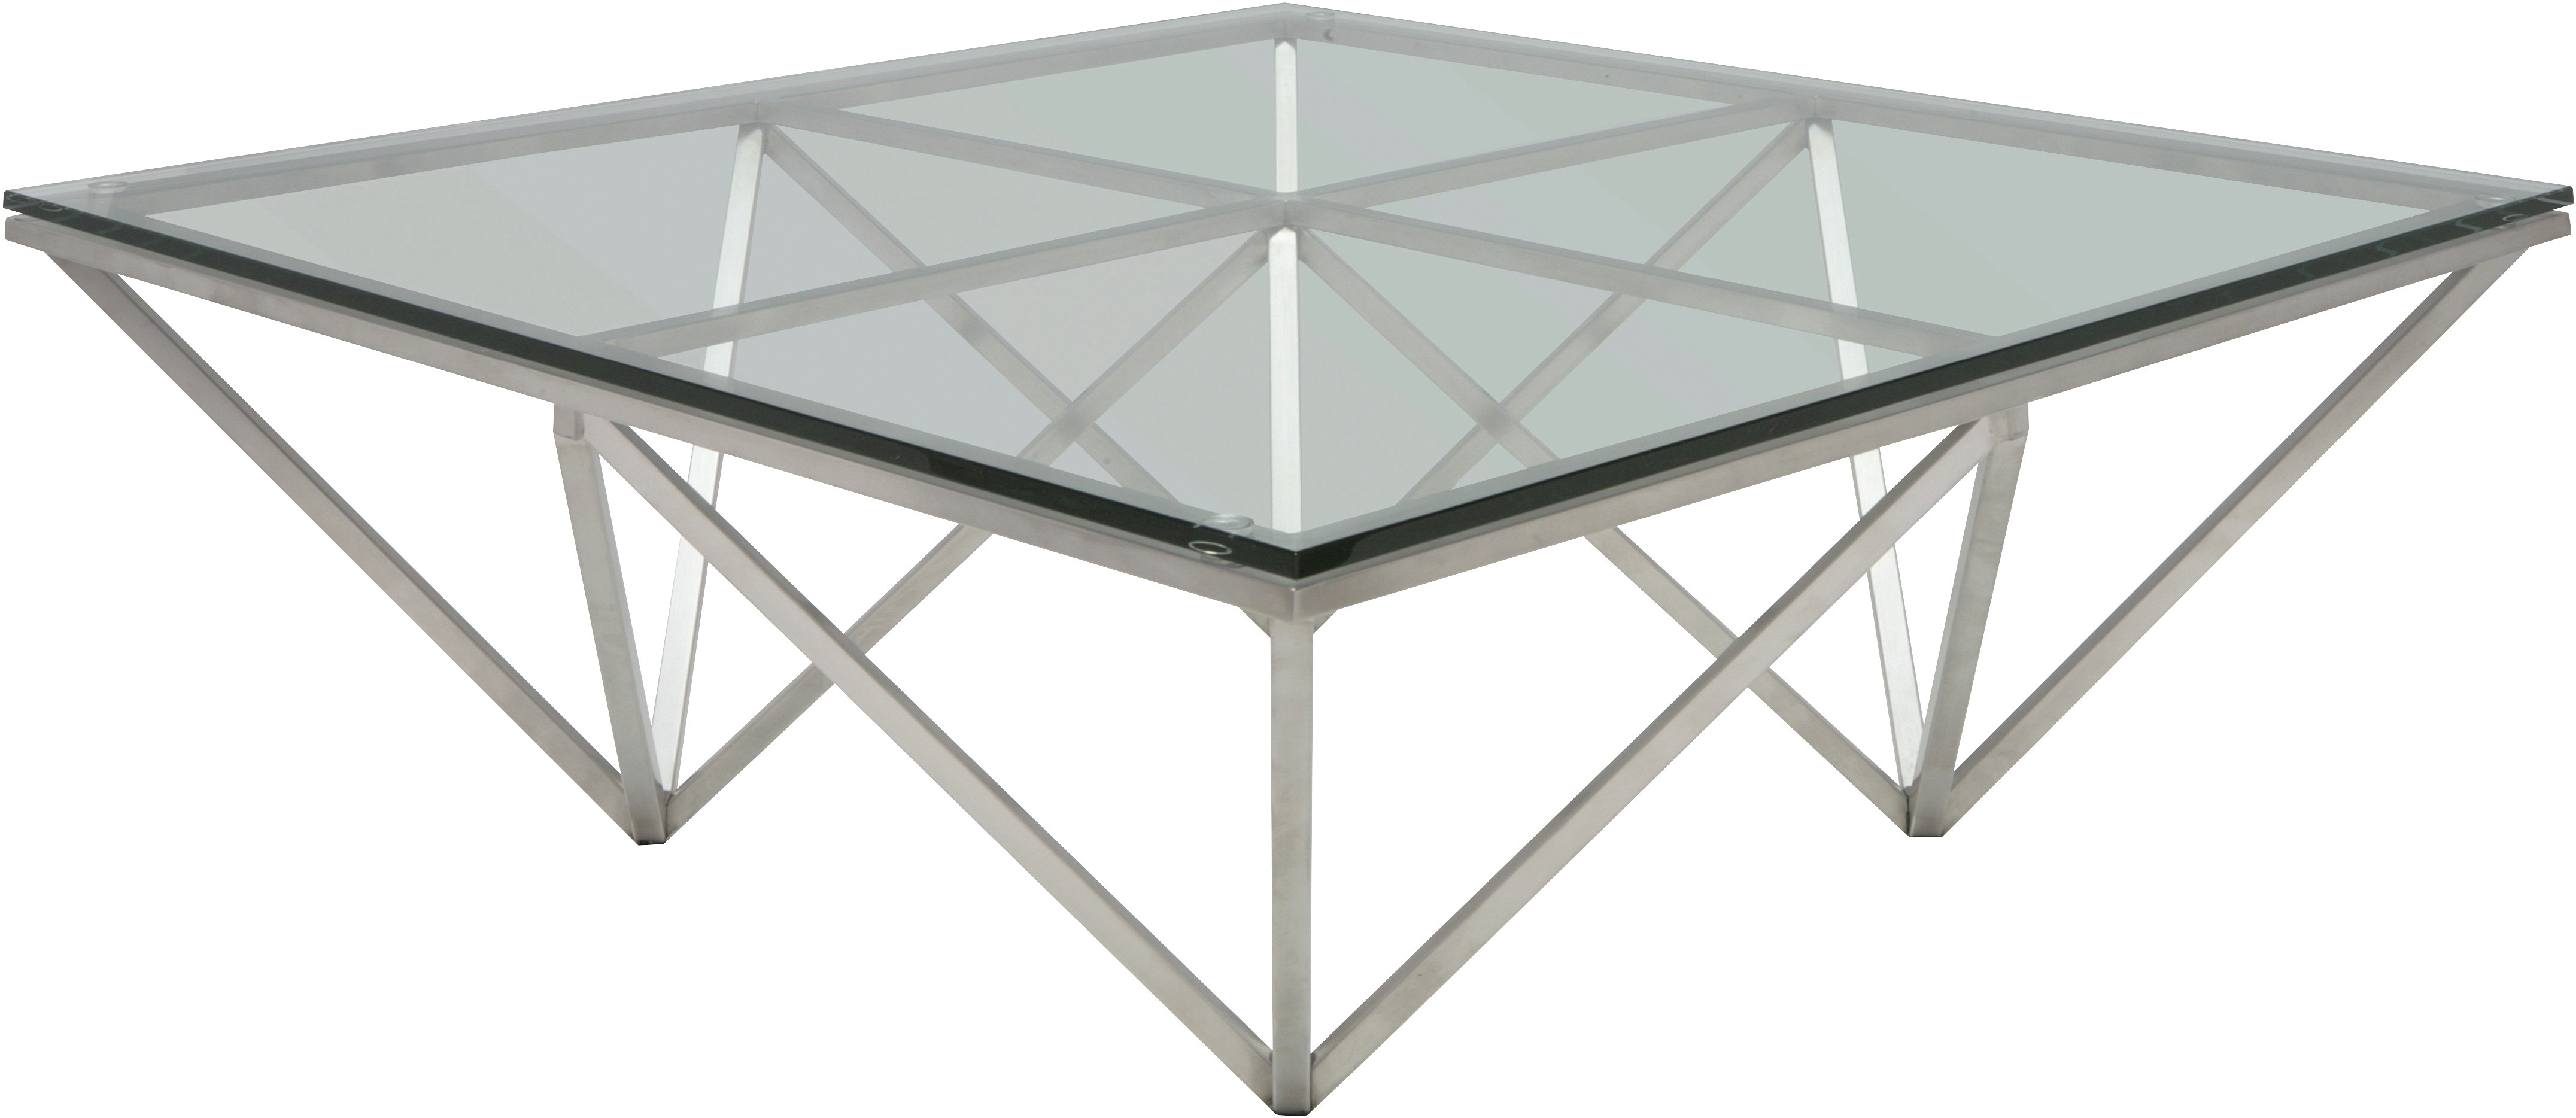 the oragami coffee table in brushed stainless steel